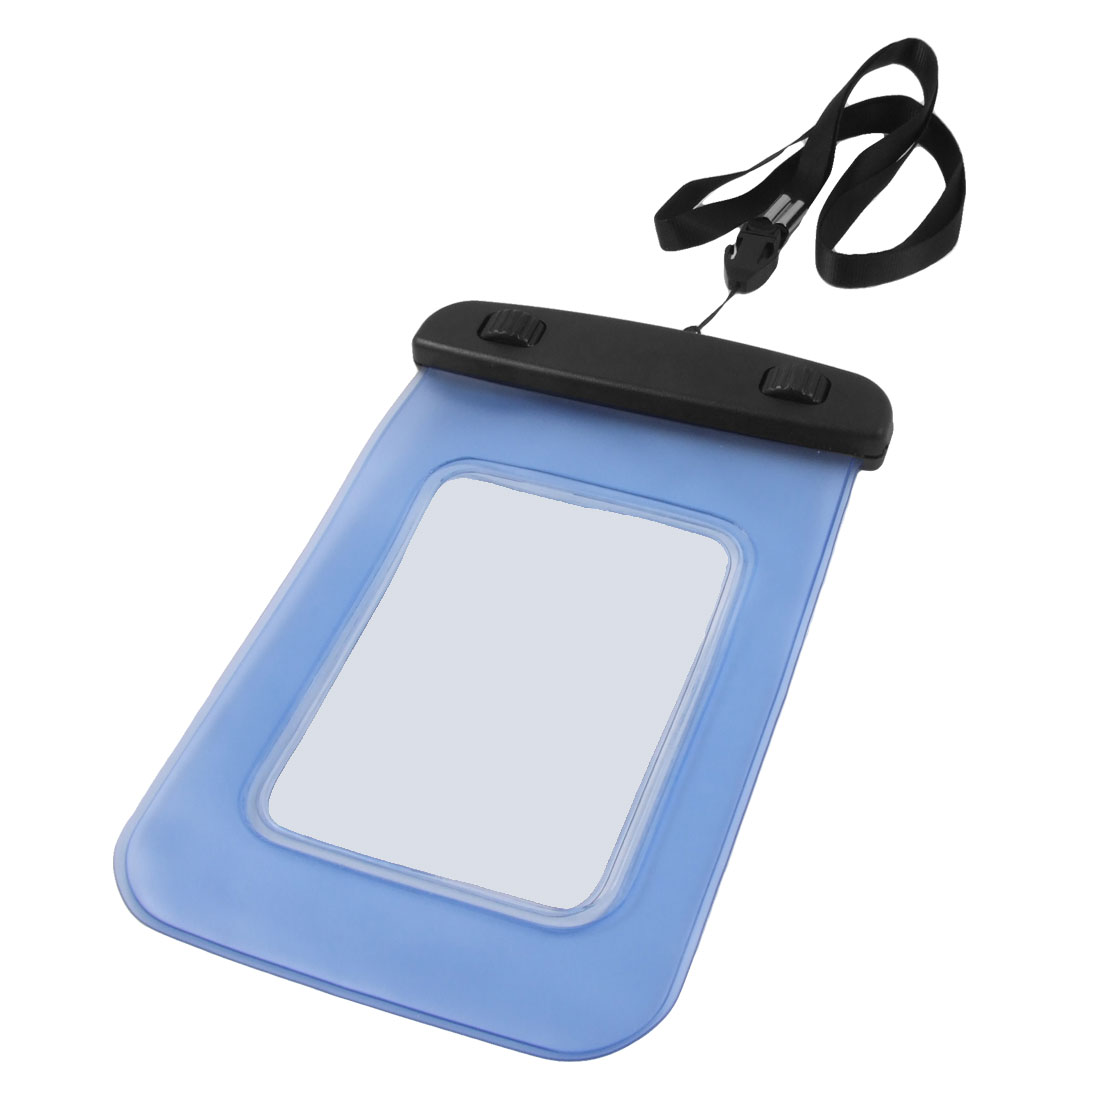 Plastic Water Resist Case Pouch Blue w Strap for iPhone 3G 3GS 4 4G